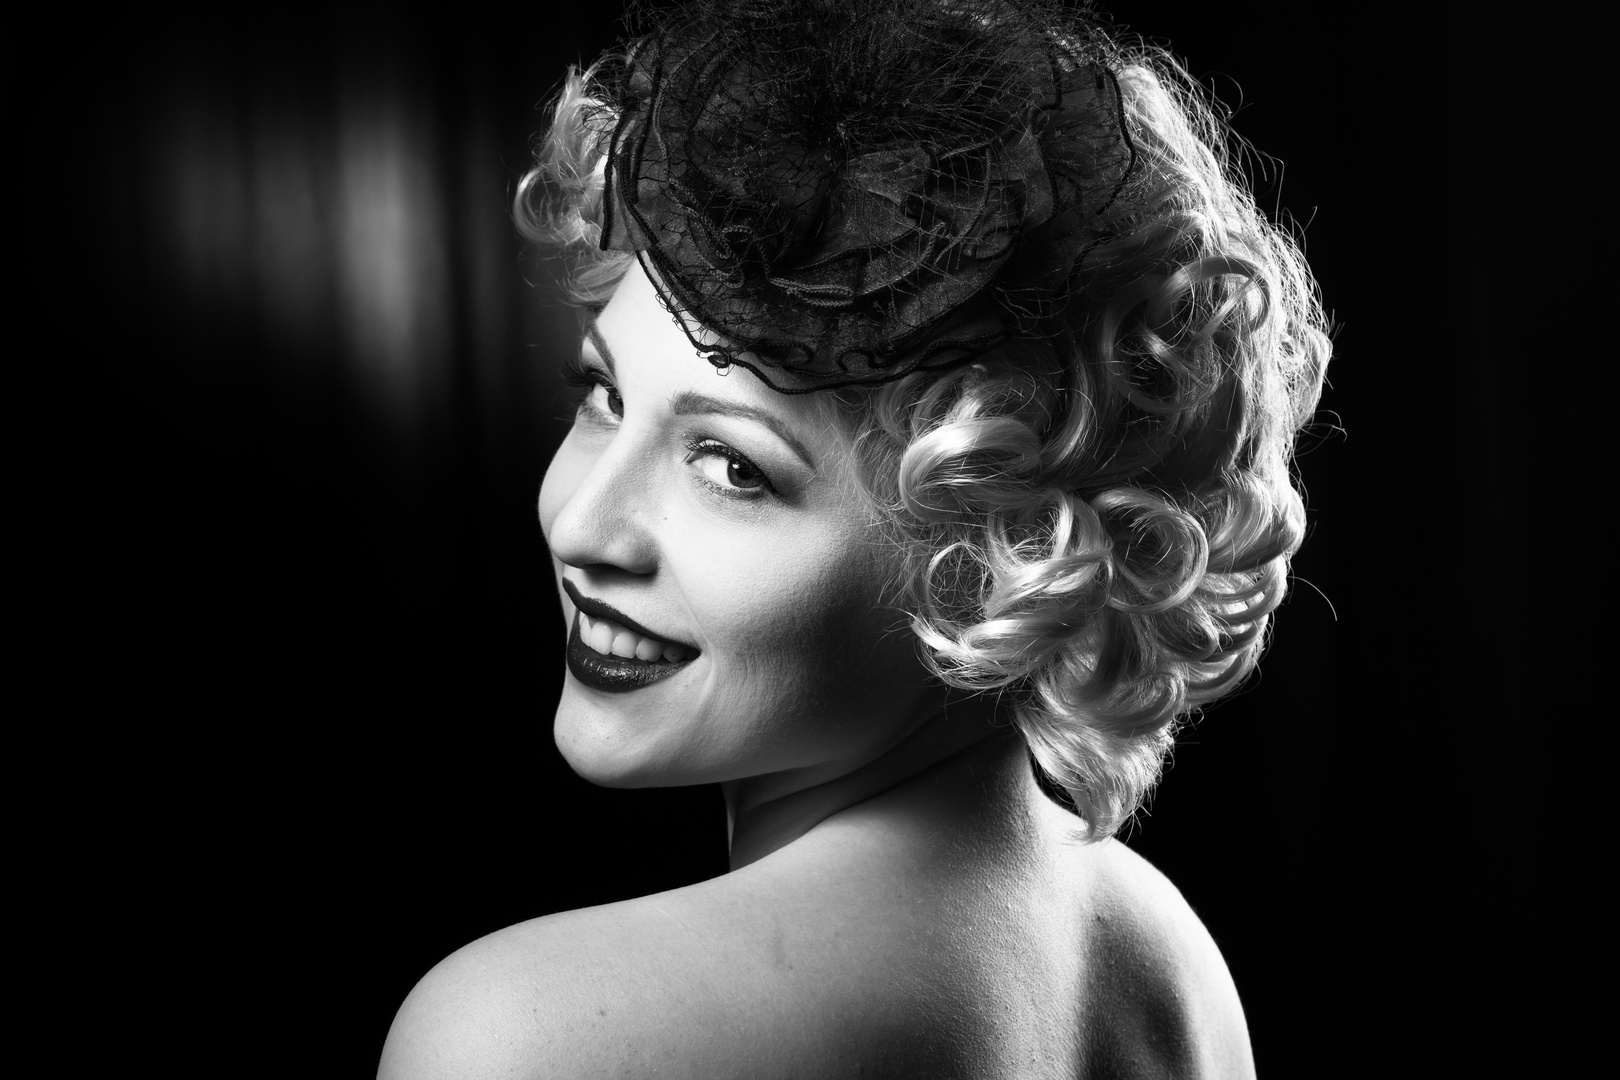 Marilyn back and white